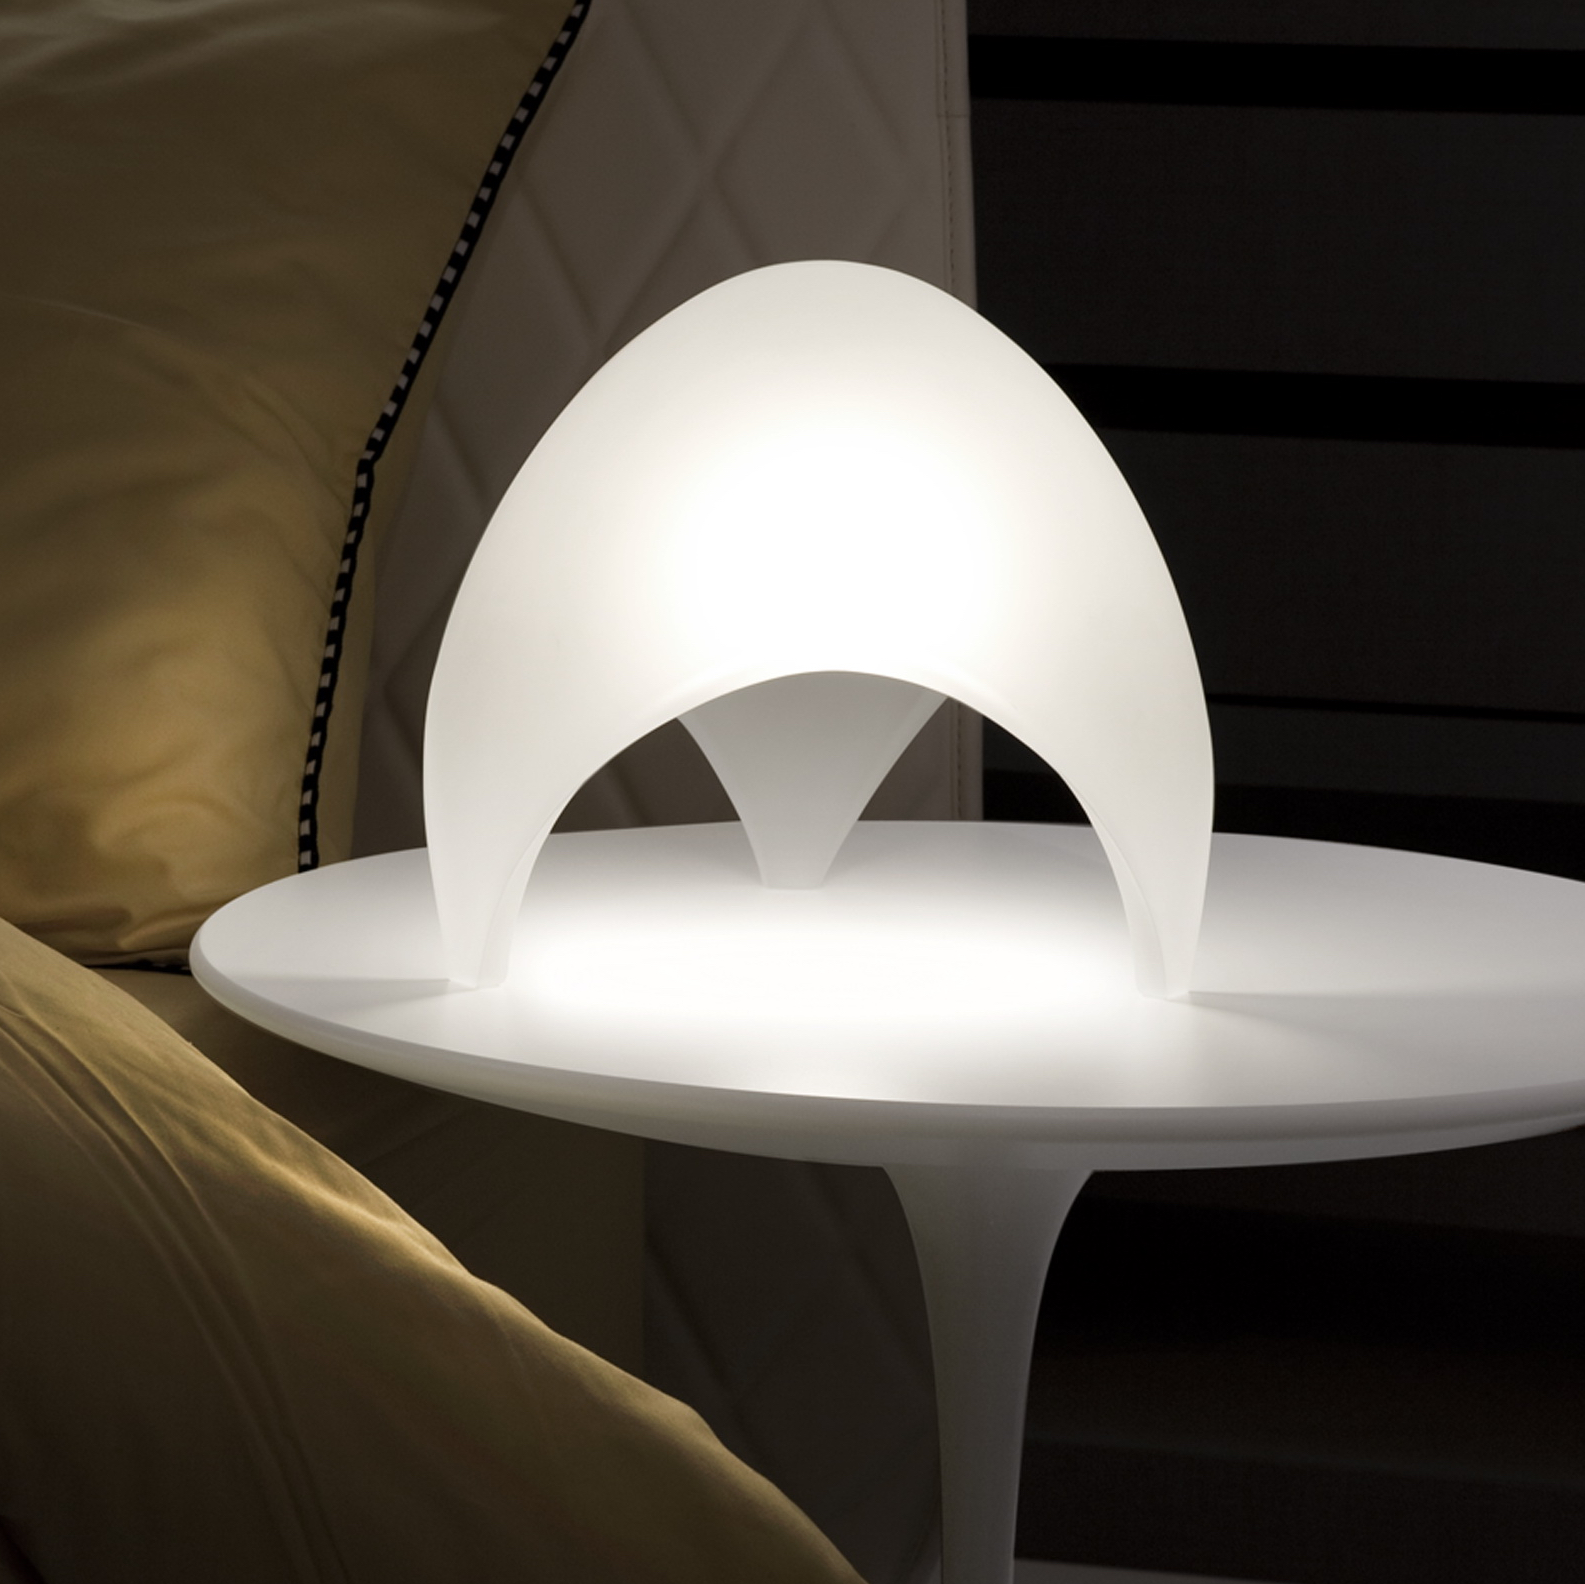 lampe poser coque blanc 25cm martinelli luce luminaires nedgis. Black Bedroom Furniture Sets. Home Design Ideas